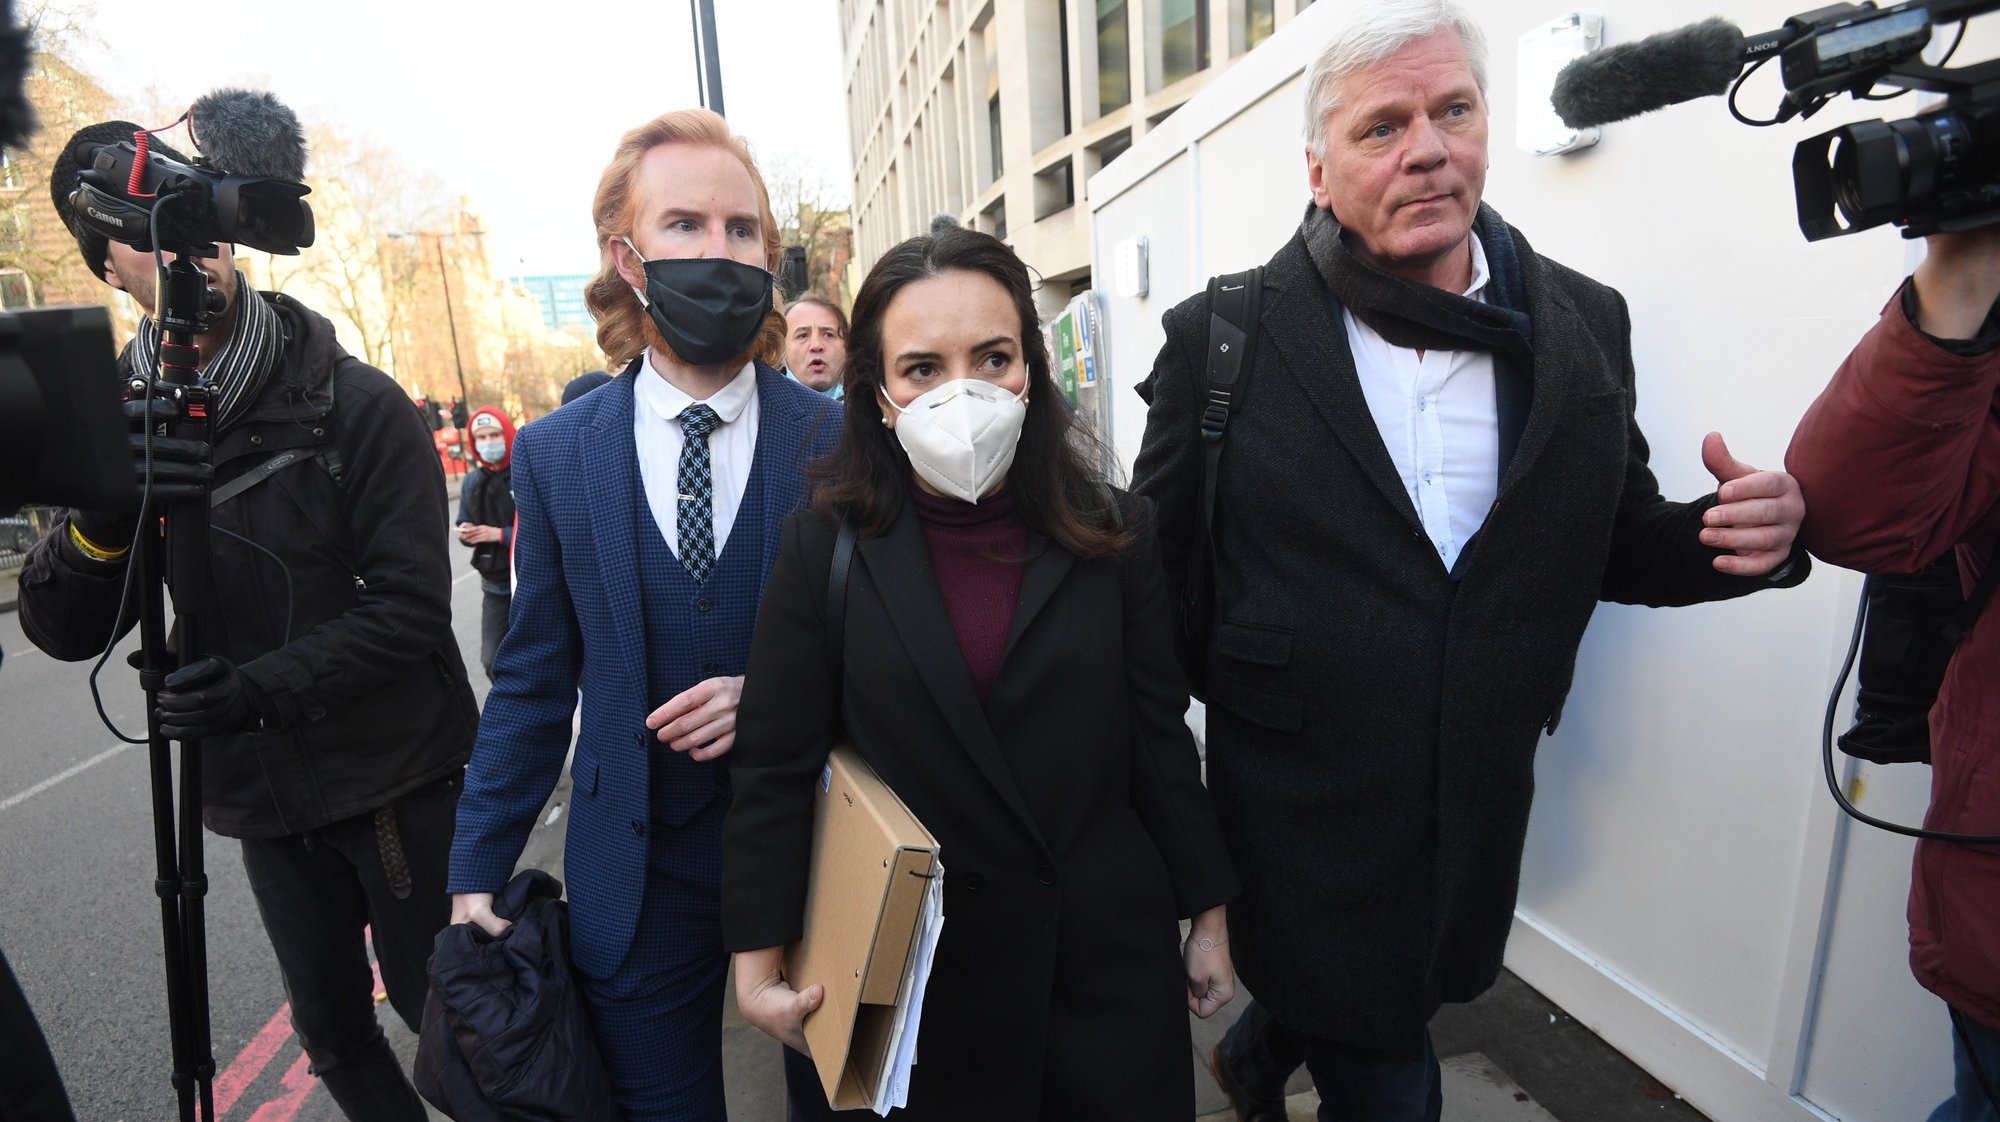 epaselect epa08921987 Stella Morris (C), partner of Wikileaks founder Julian Assange, leaves City of Westminster Magistrates court in central London, Britain, 06 January 2021. Wikileaks founder Julian Assange has been denied bail after a judge said he should not be extradited to the US to face trial because of suicide fears. Assange will make a bail application whilst the US government appeals Judge Baraitser's decision.  EPA/FACUNDO ARRIZABALAGA